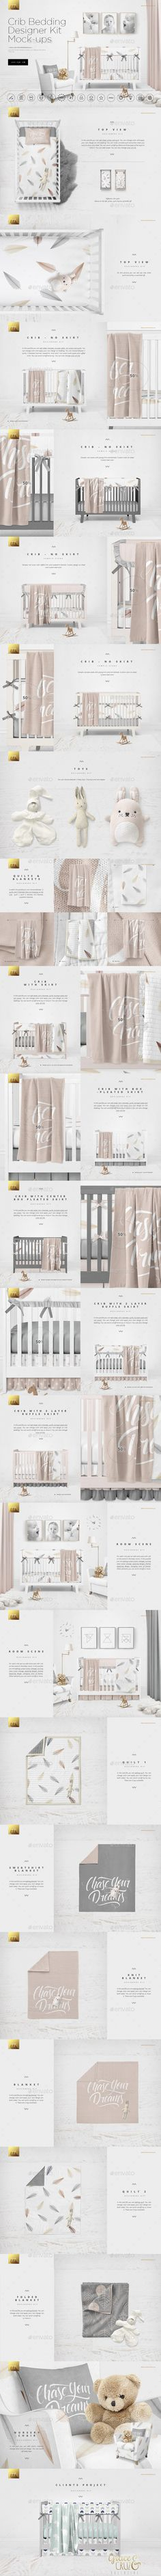 Crib Bedding Designer Kit Mock-ups PSD Template • Download ➝ https://graphicriver.net/item/crib-bedding-designer-kit-mockups/17136546?ref=pxcr